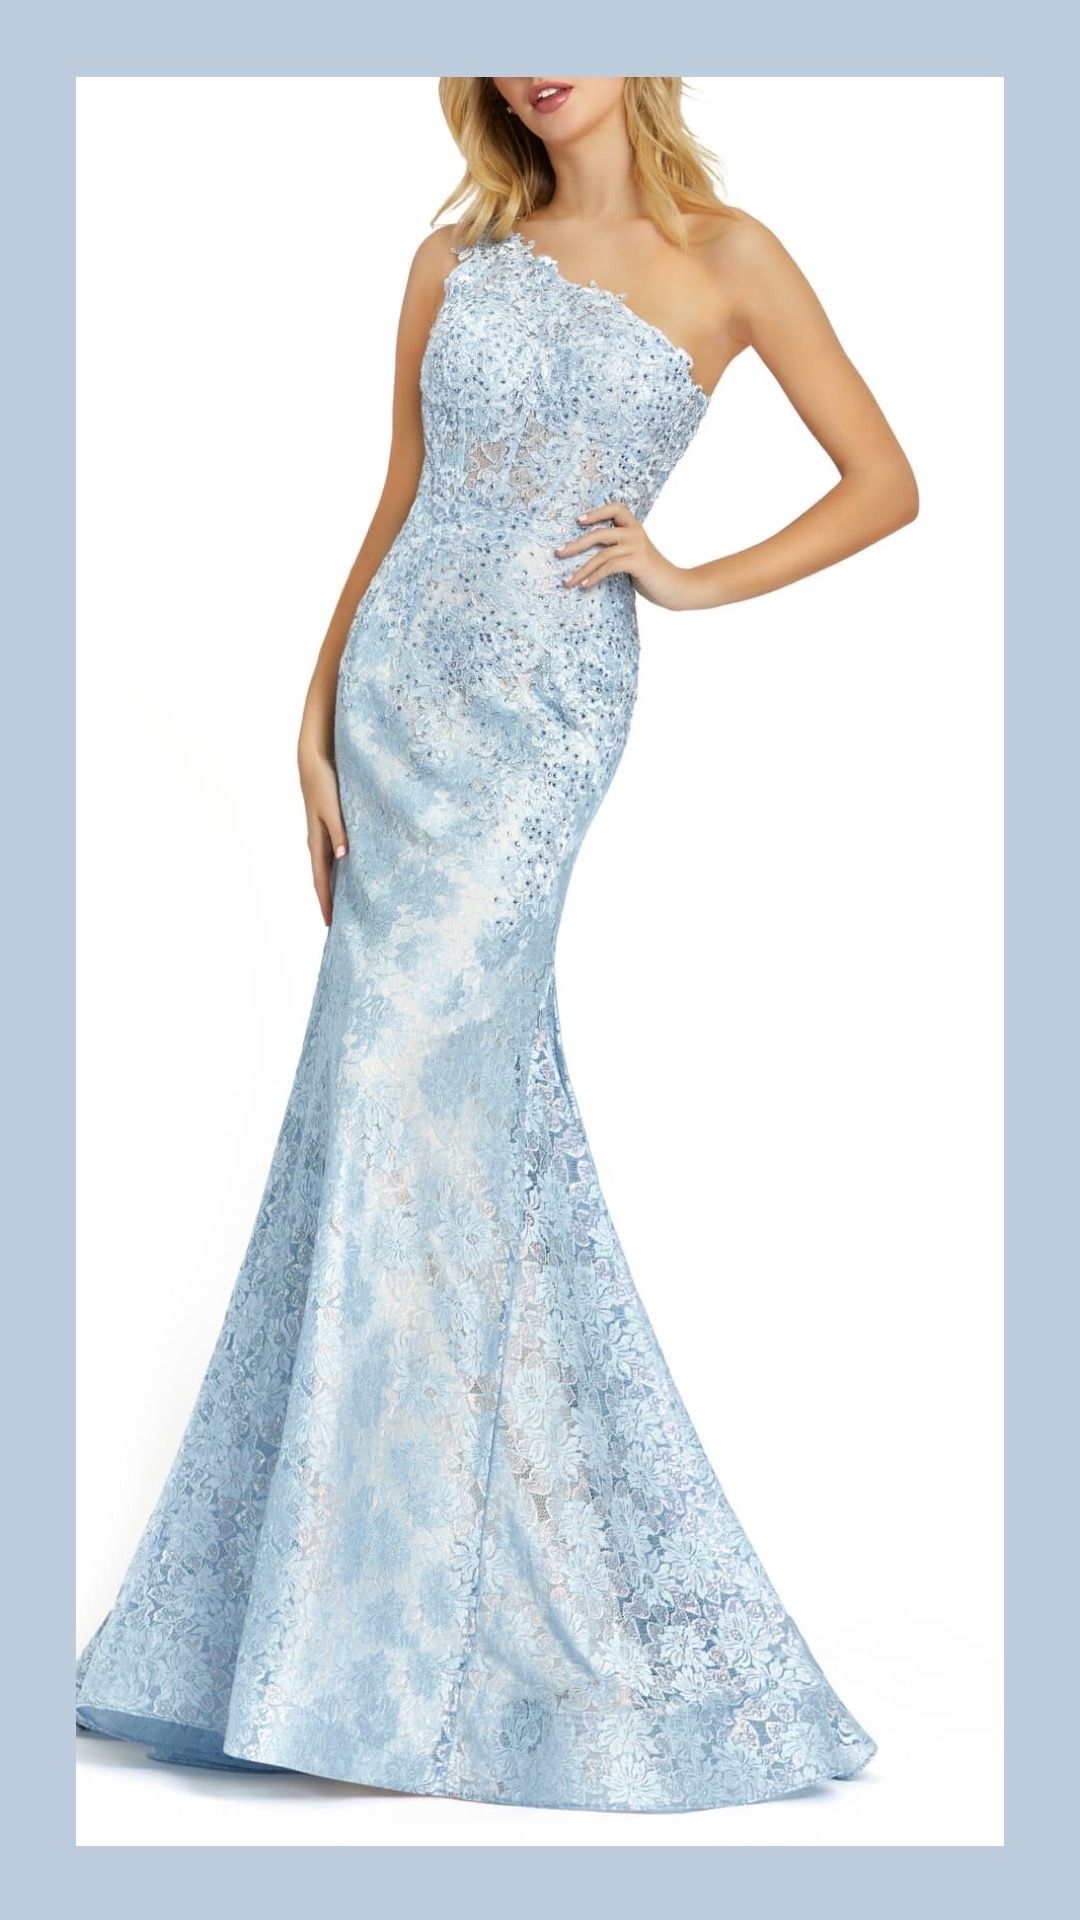 Ice blue wedding guest dress https//rstyle.me/czn